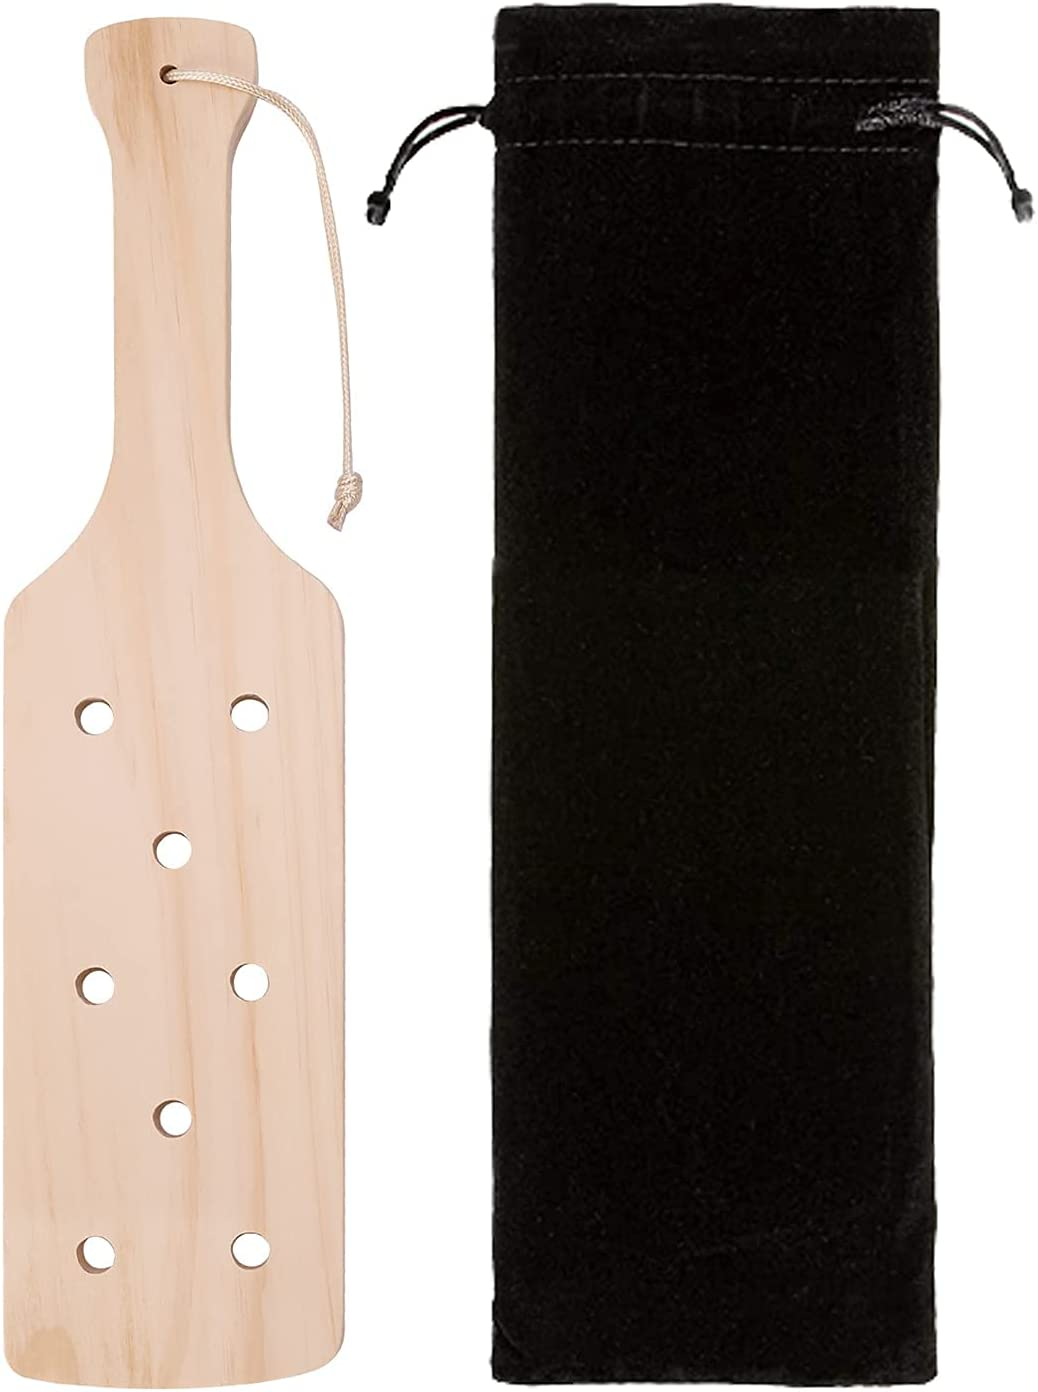 Enhanced 14inch Wood Paddle Confident to Swing with Unique Handle and Airflow Holes, Flannel Drawstring Bag Included